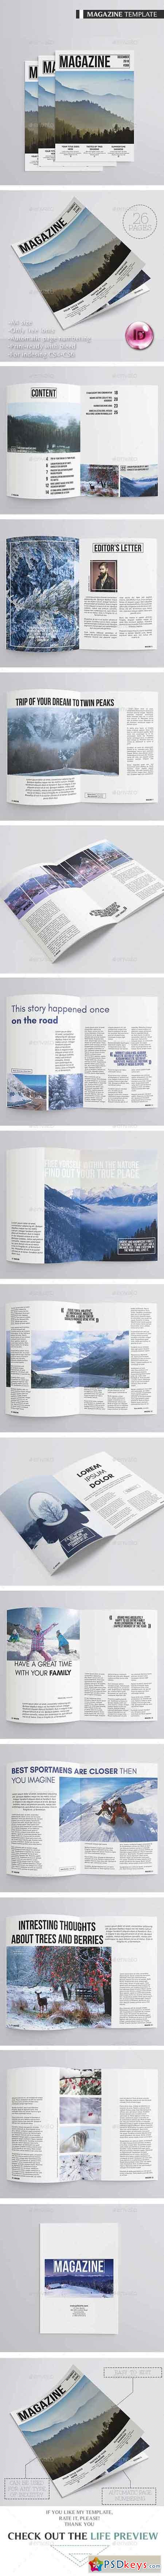 Minimal Magazine 26 Pages 16852032